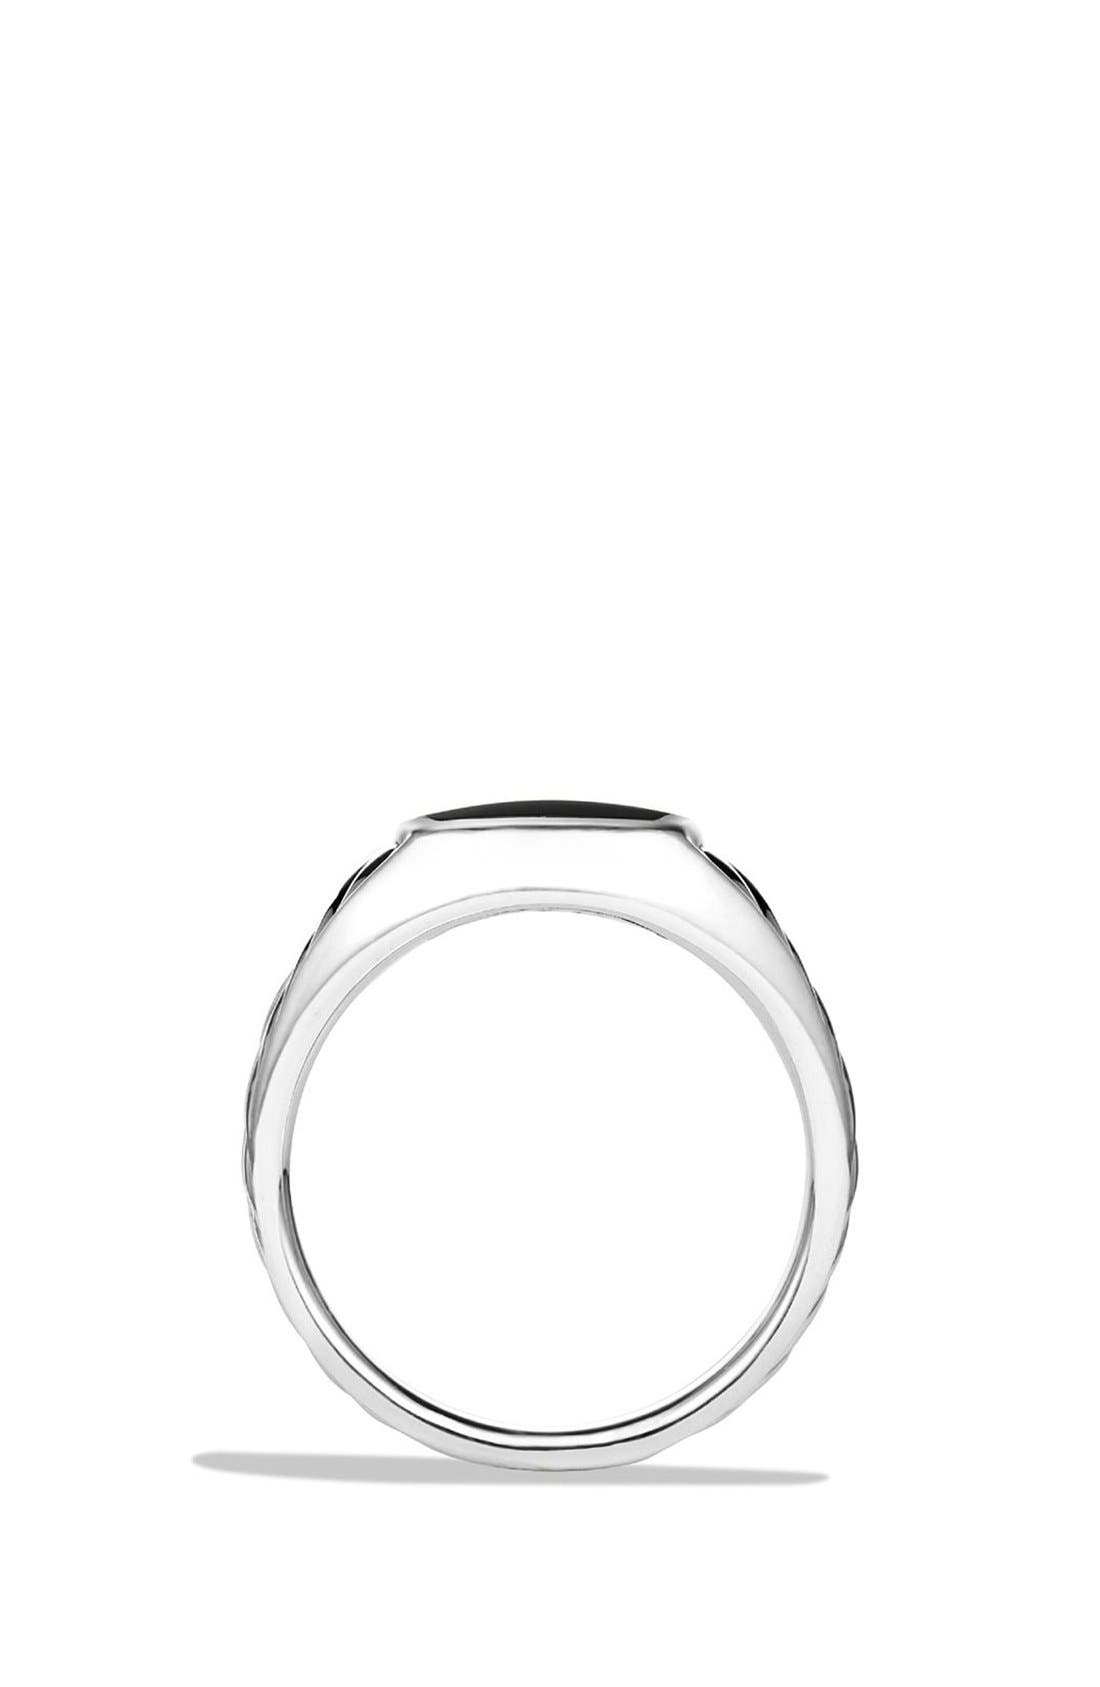 'Cable Classics' Signet Ring,                             Alternate thumbnail 2, color,                             SILVER/ BLACK ONYX